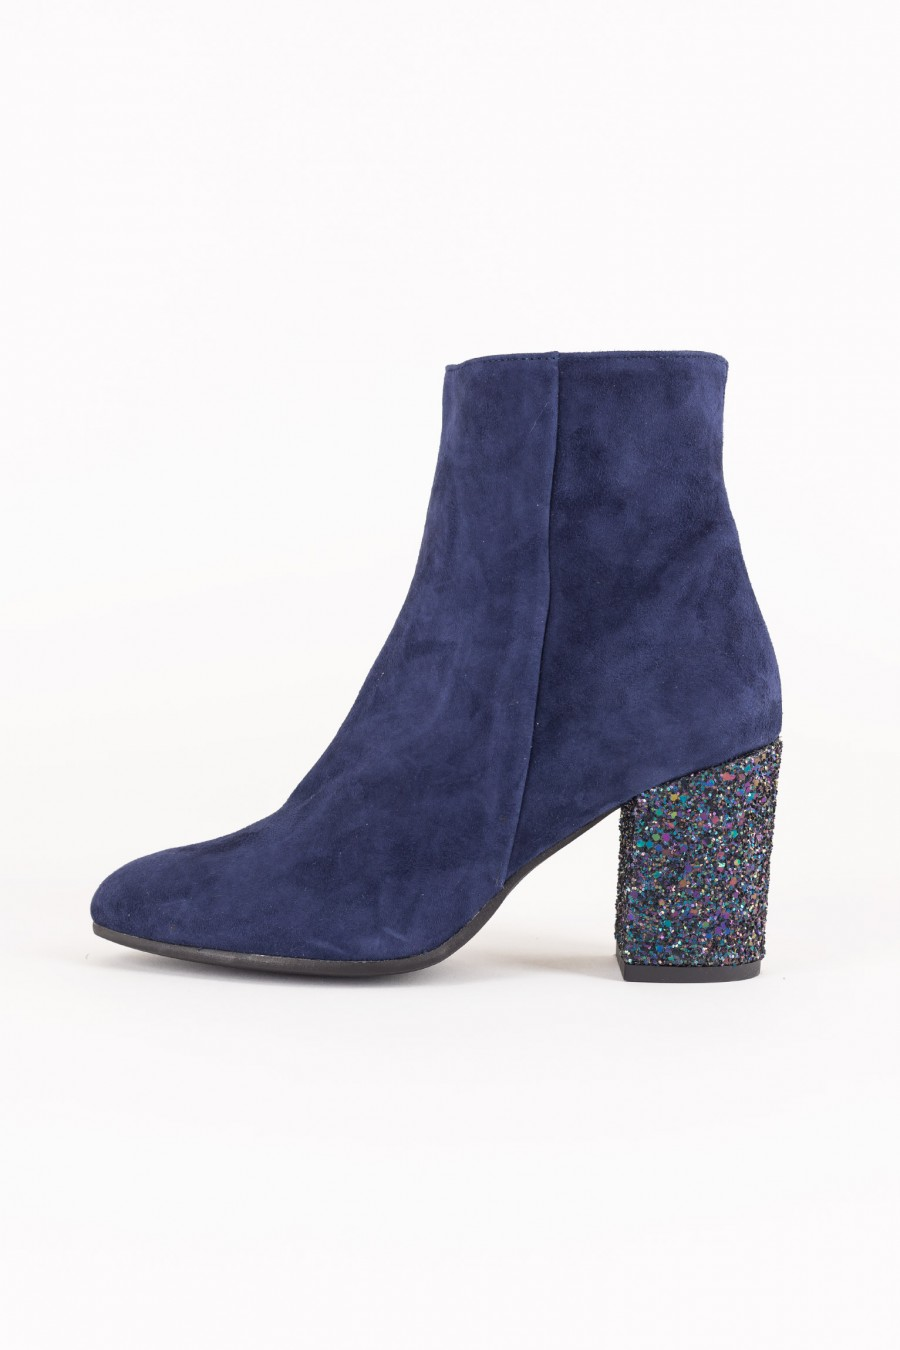 Blue boots with round toe